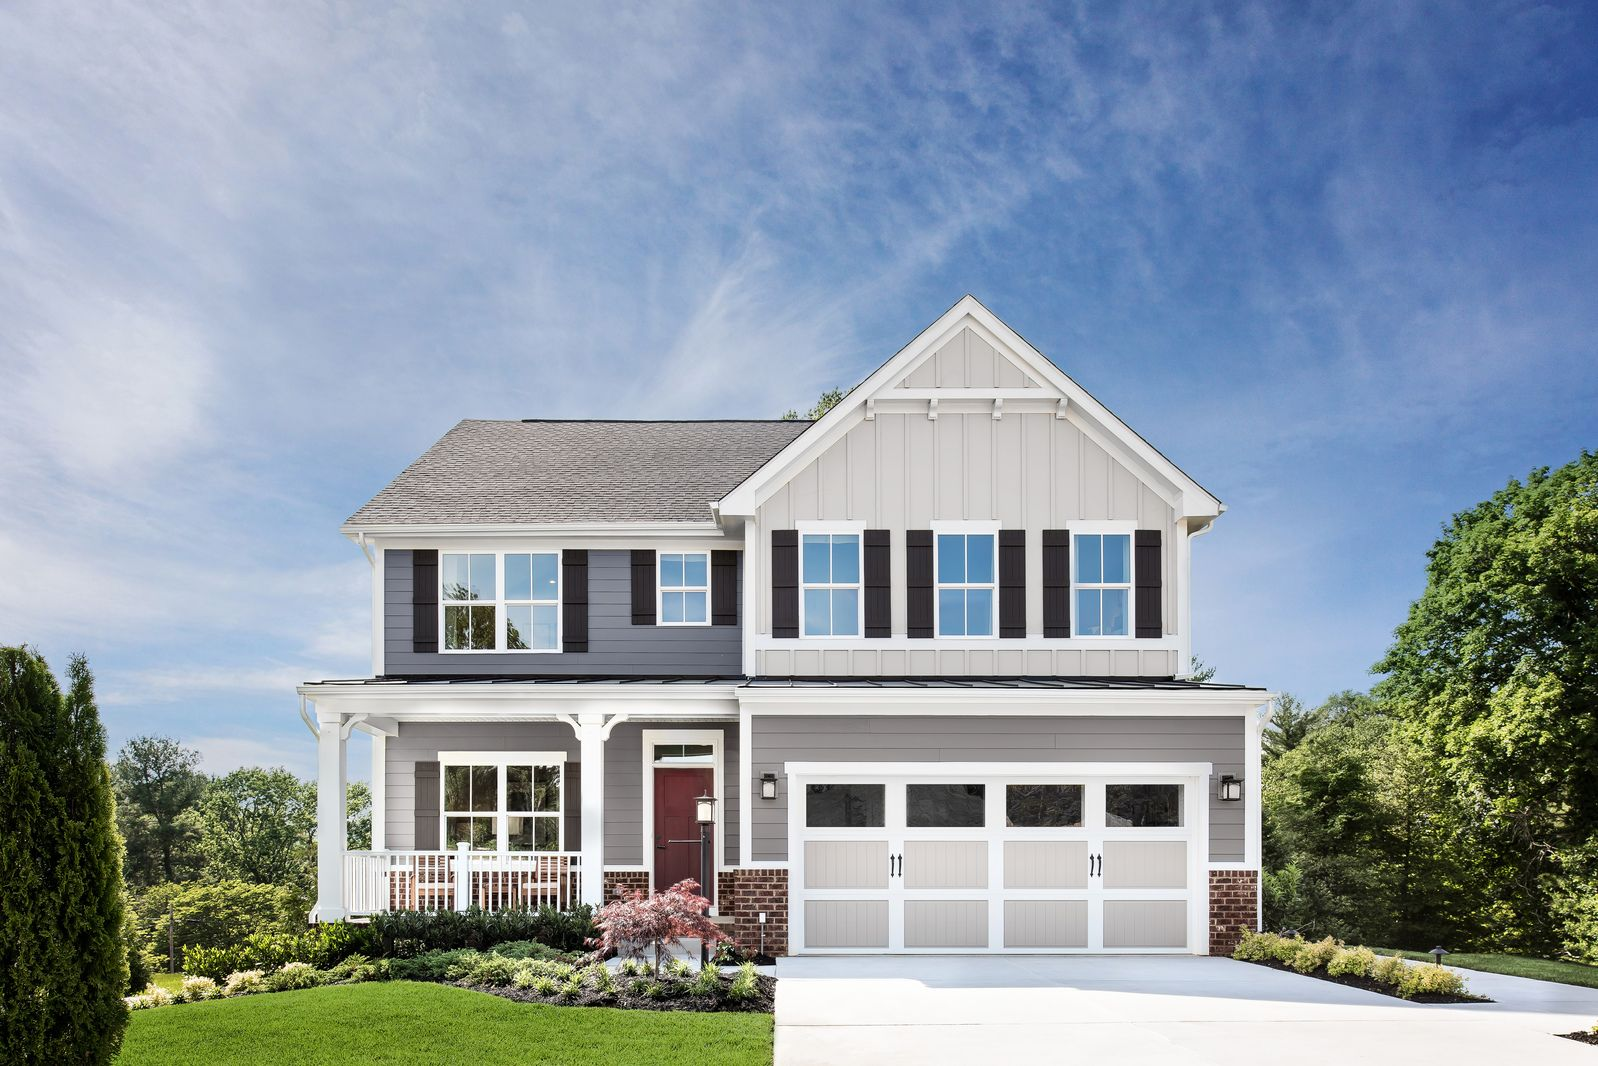 WARRENTON KNOLL - SELLING FAST IN OLD TOWN FROM THE LOW $500S!